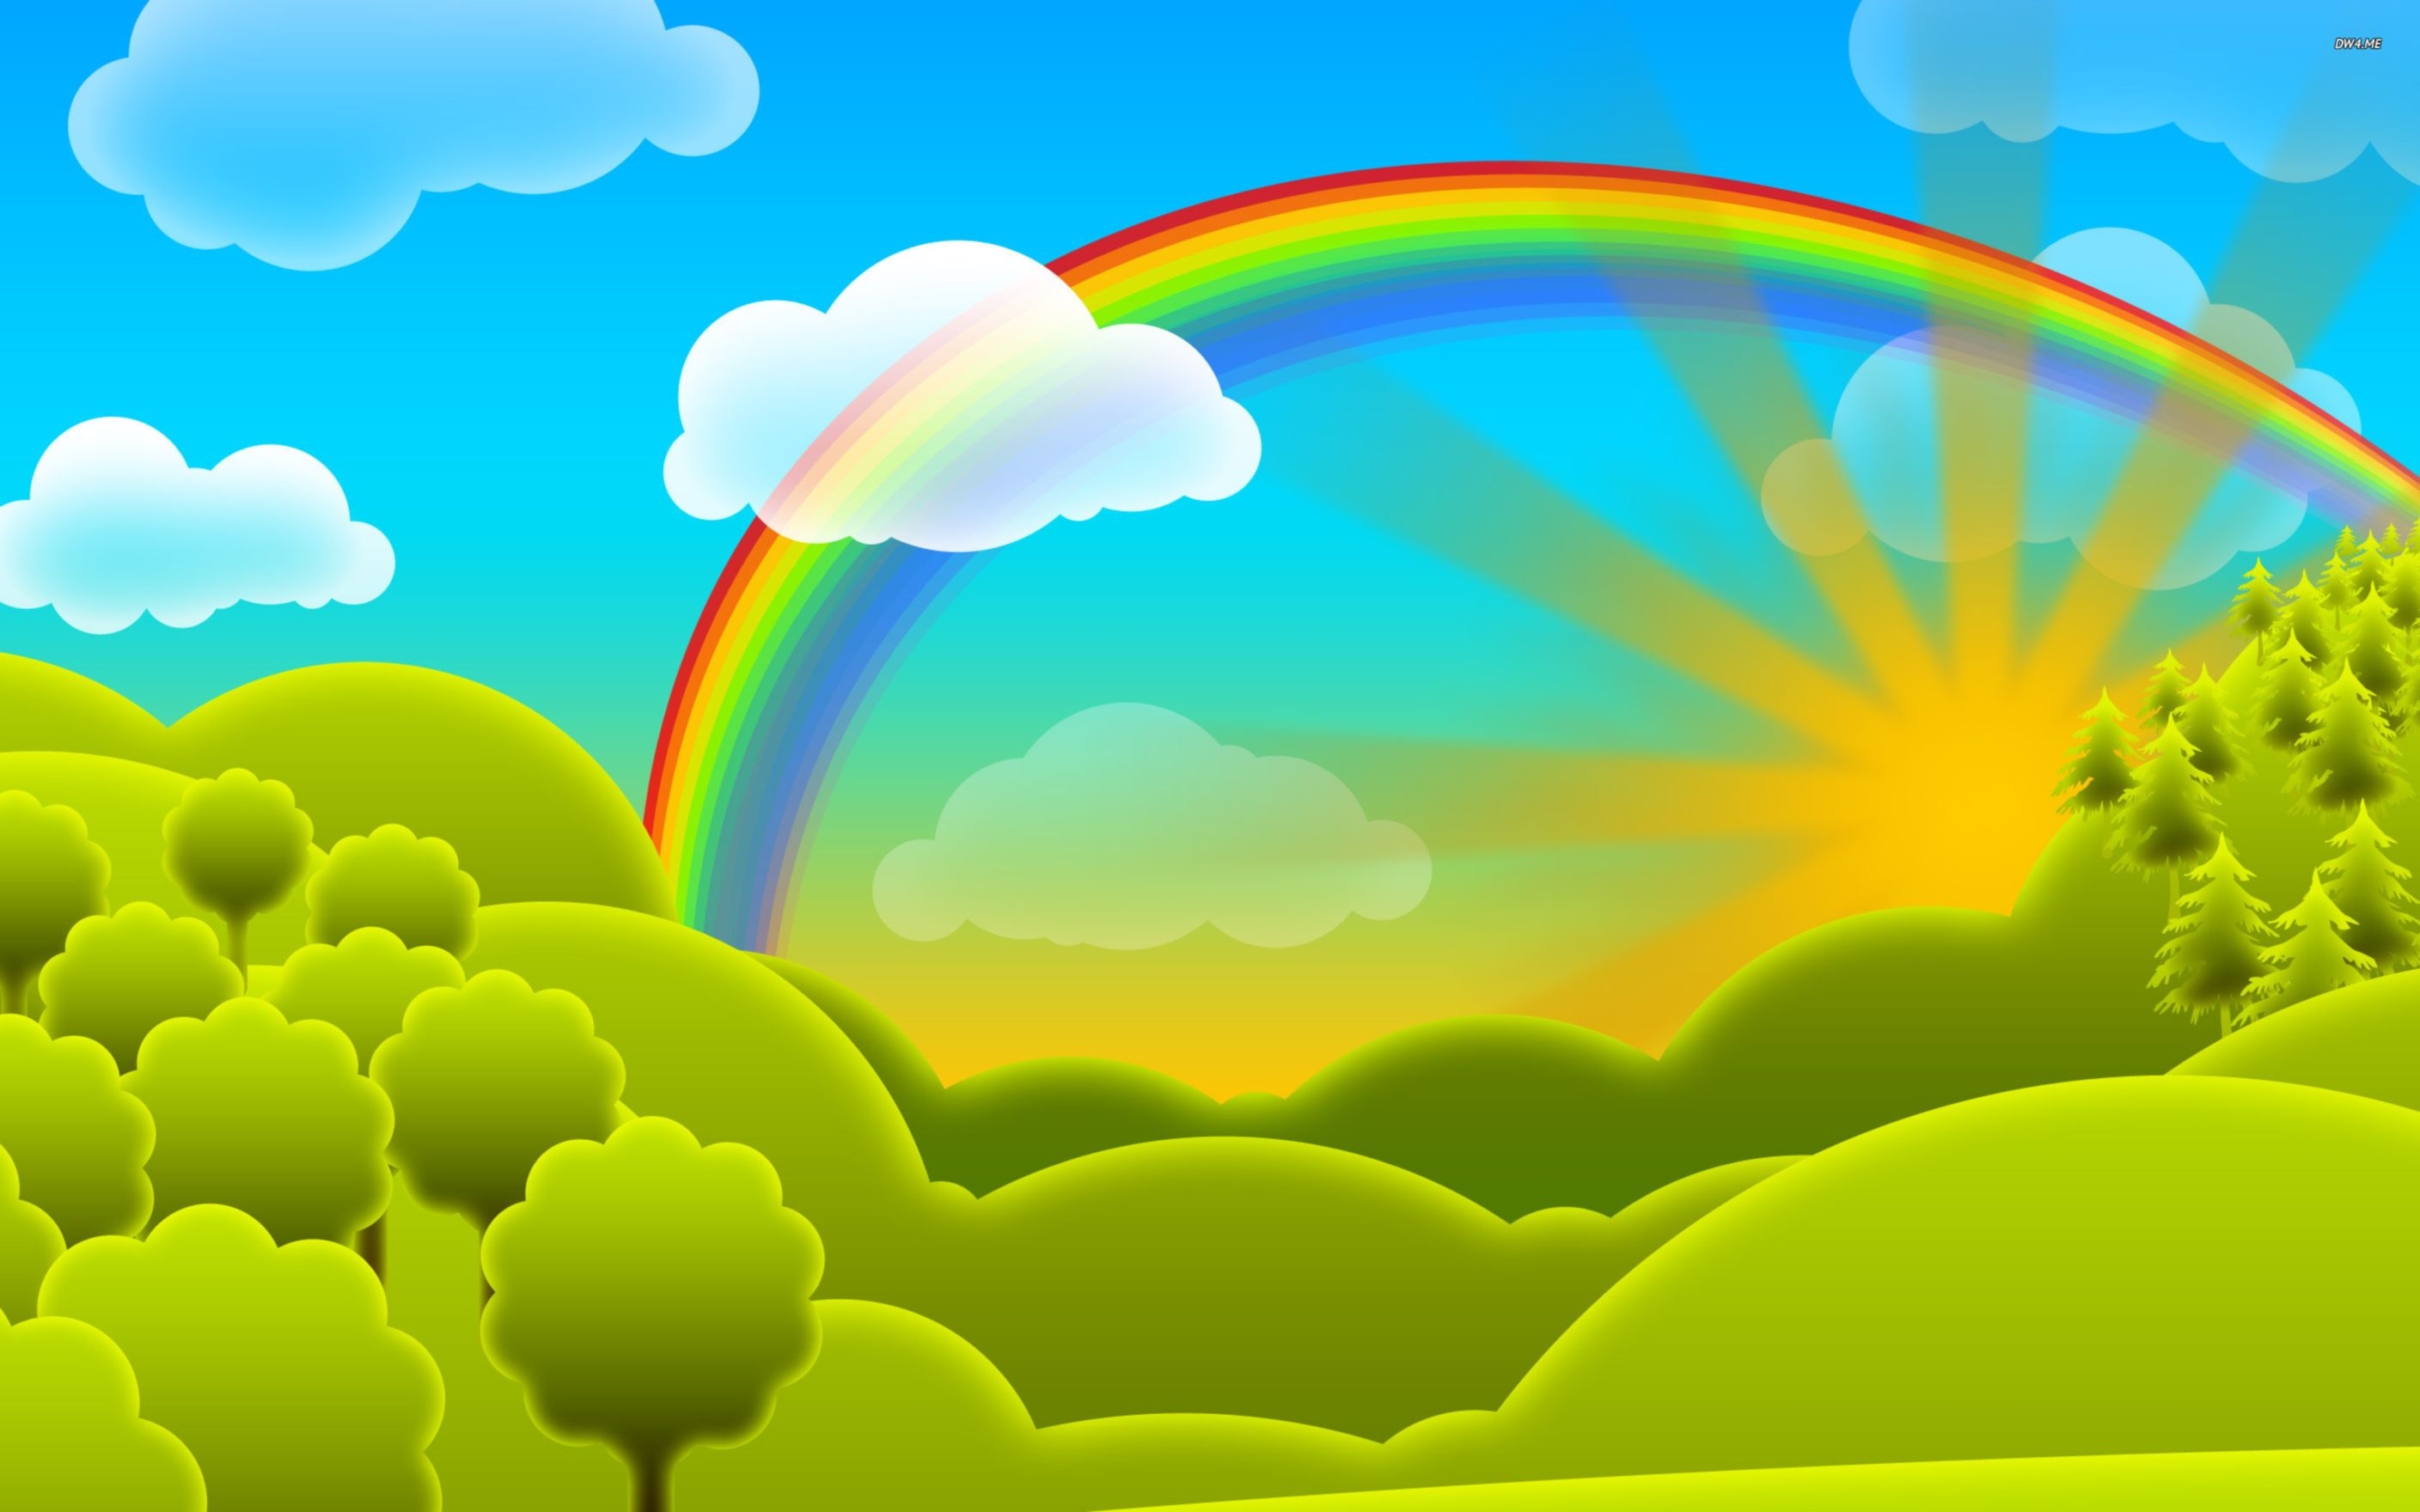 Download free HD Rainbow Full HD Cartoon Free  Wallpaper, image